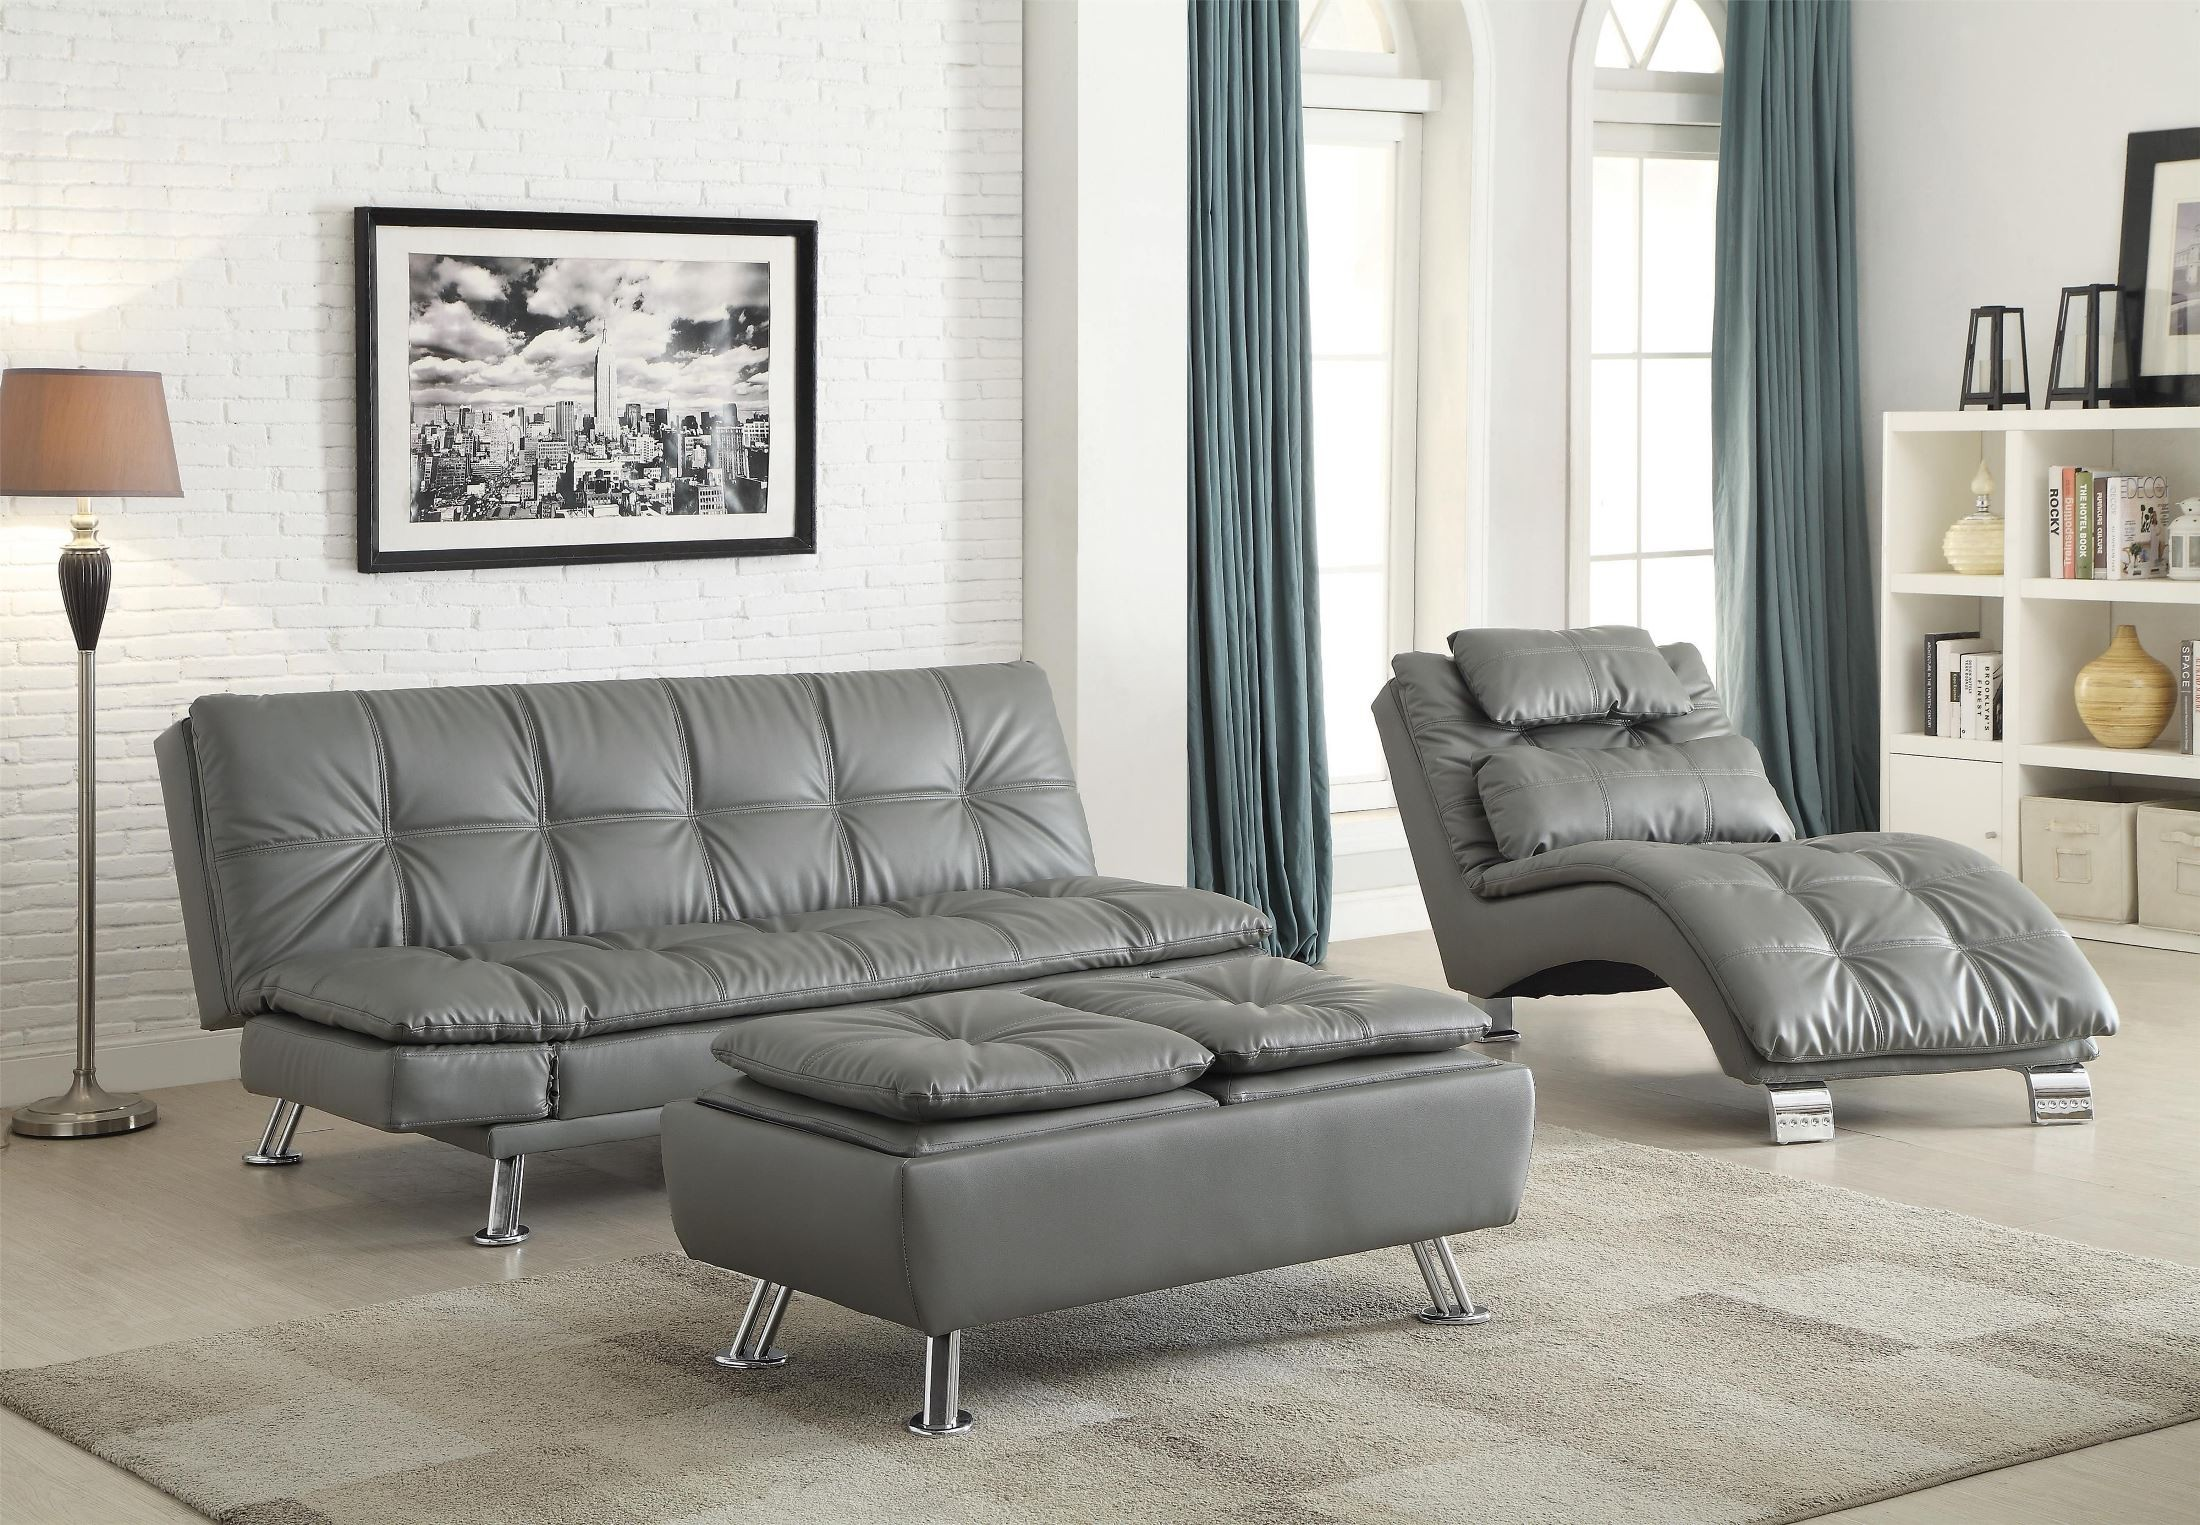 dilleston futon style living room set from coaster 500096 - Futon Living Room Set